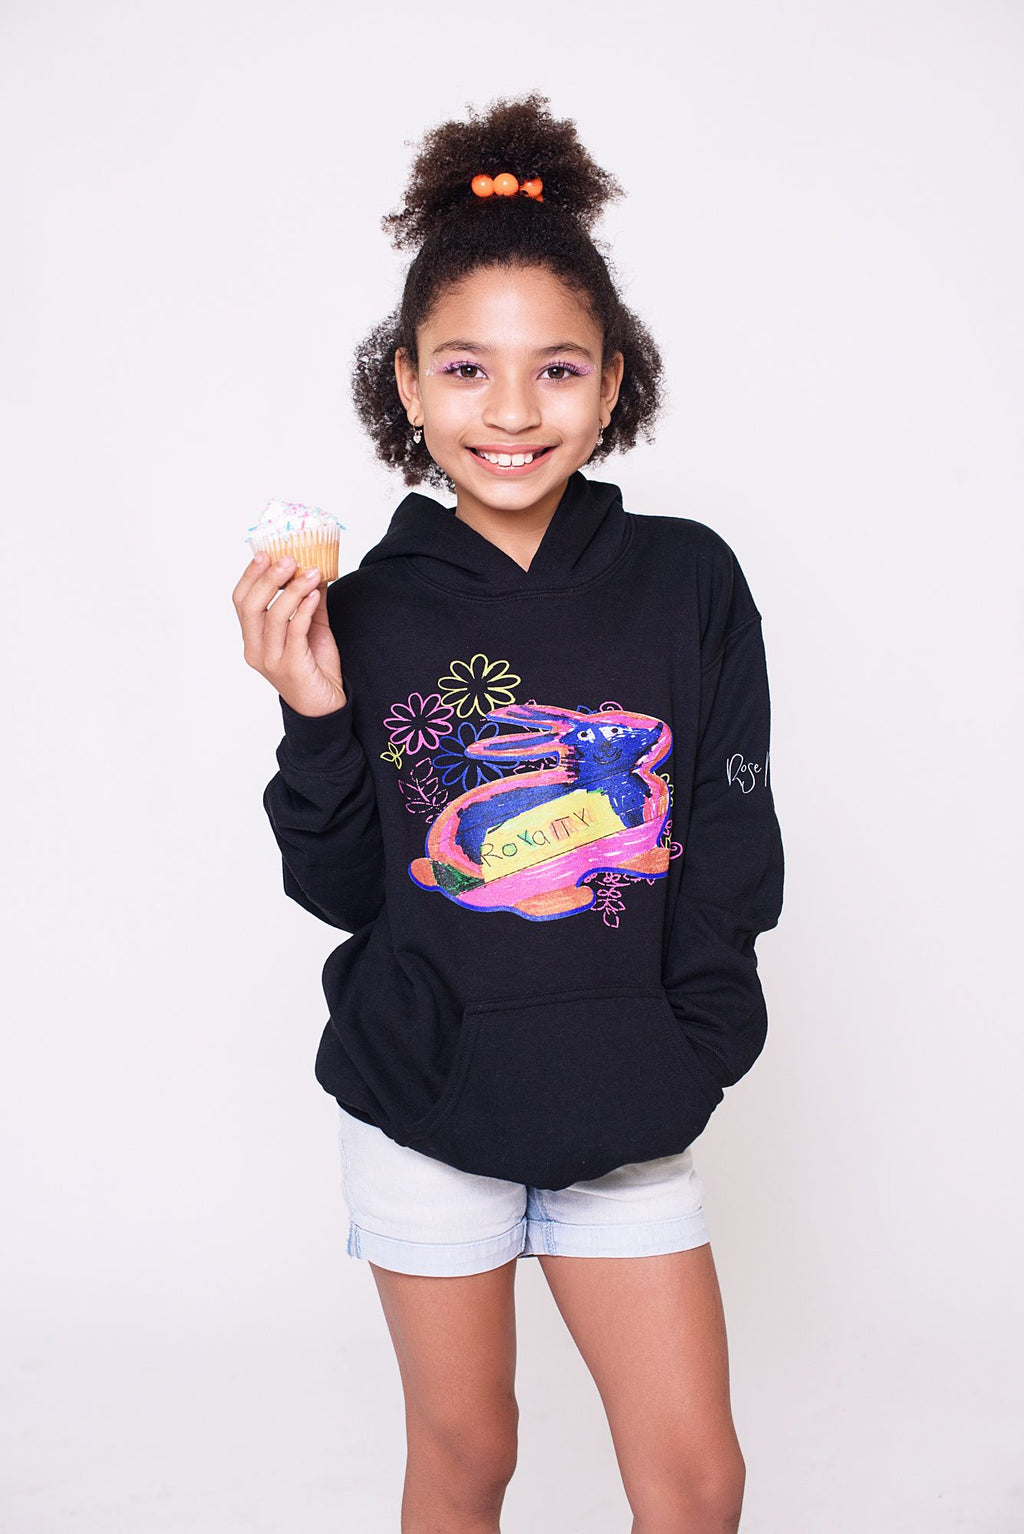 The Royalty Brown Bunny Hoodie in Black